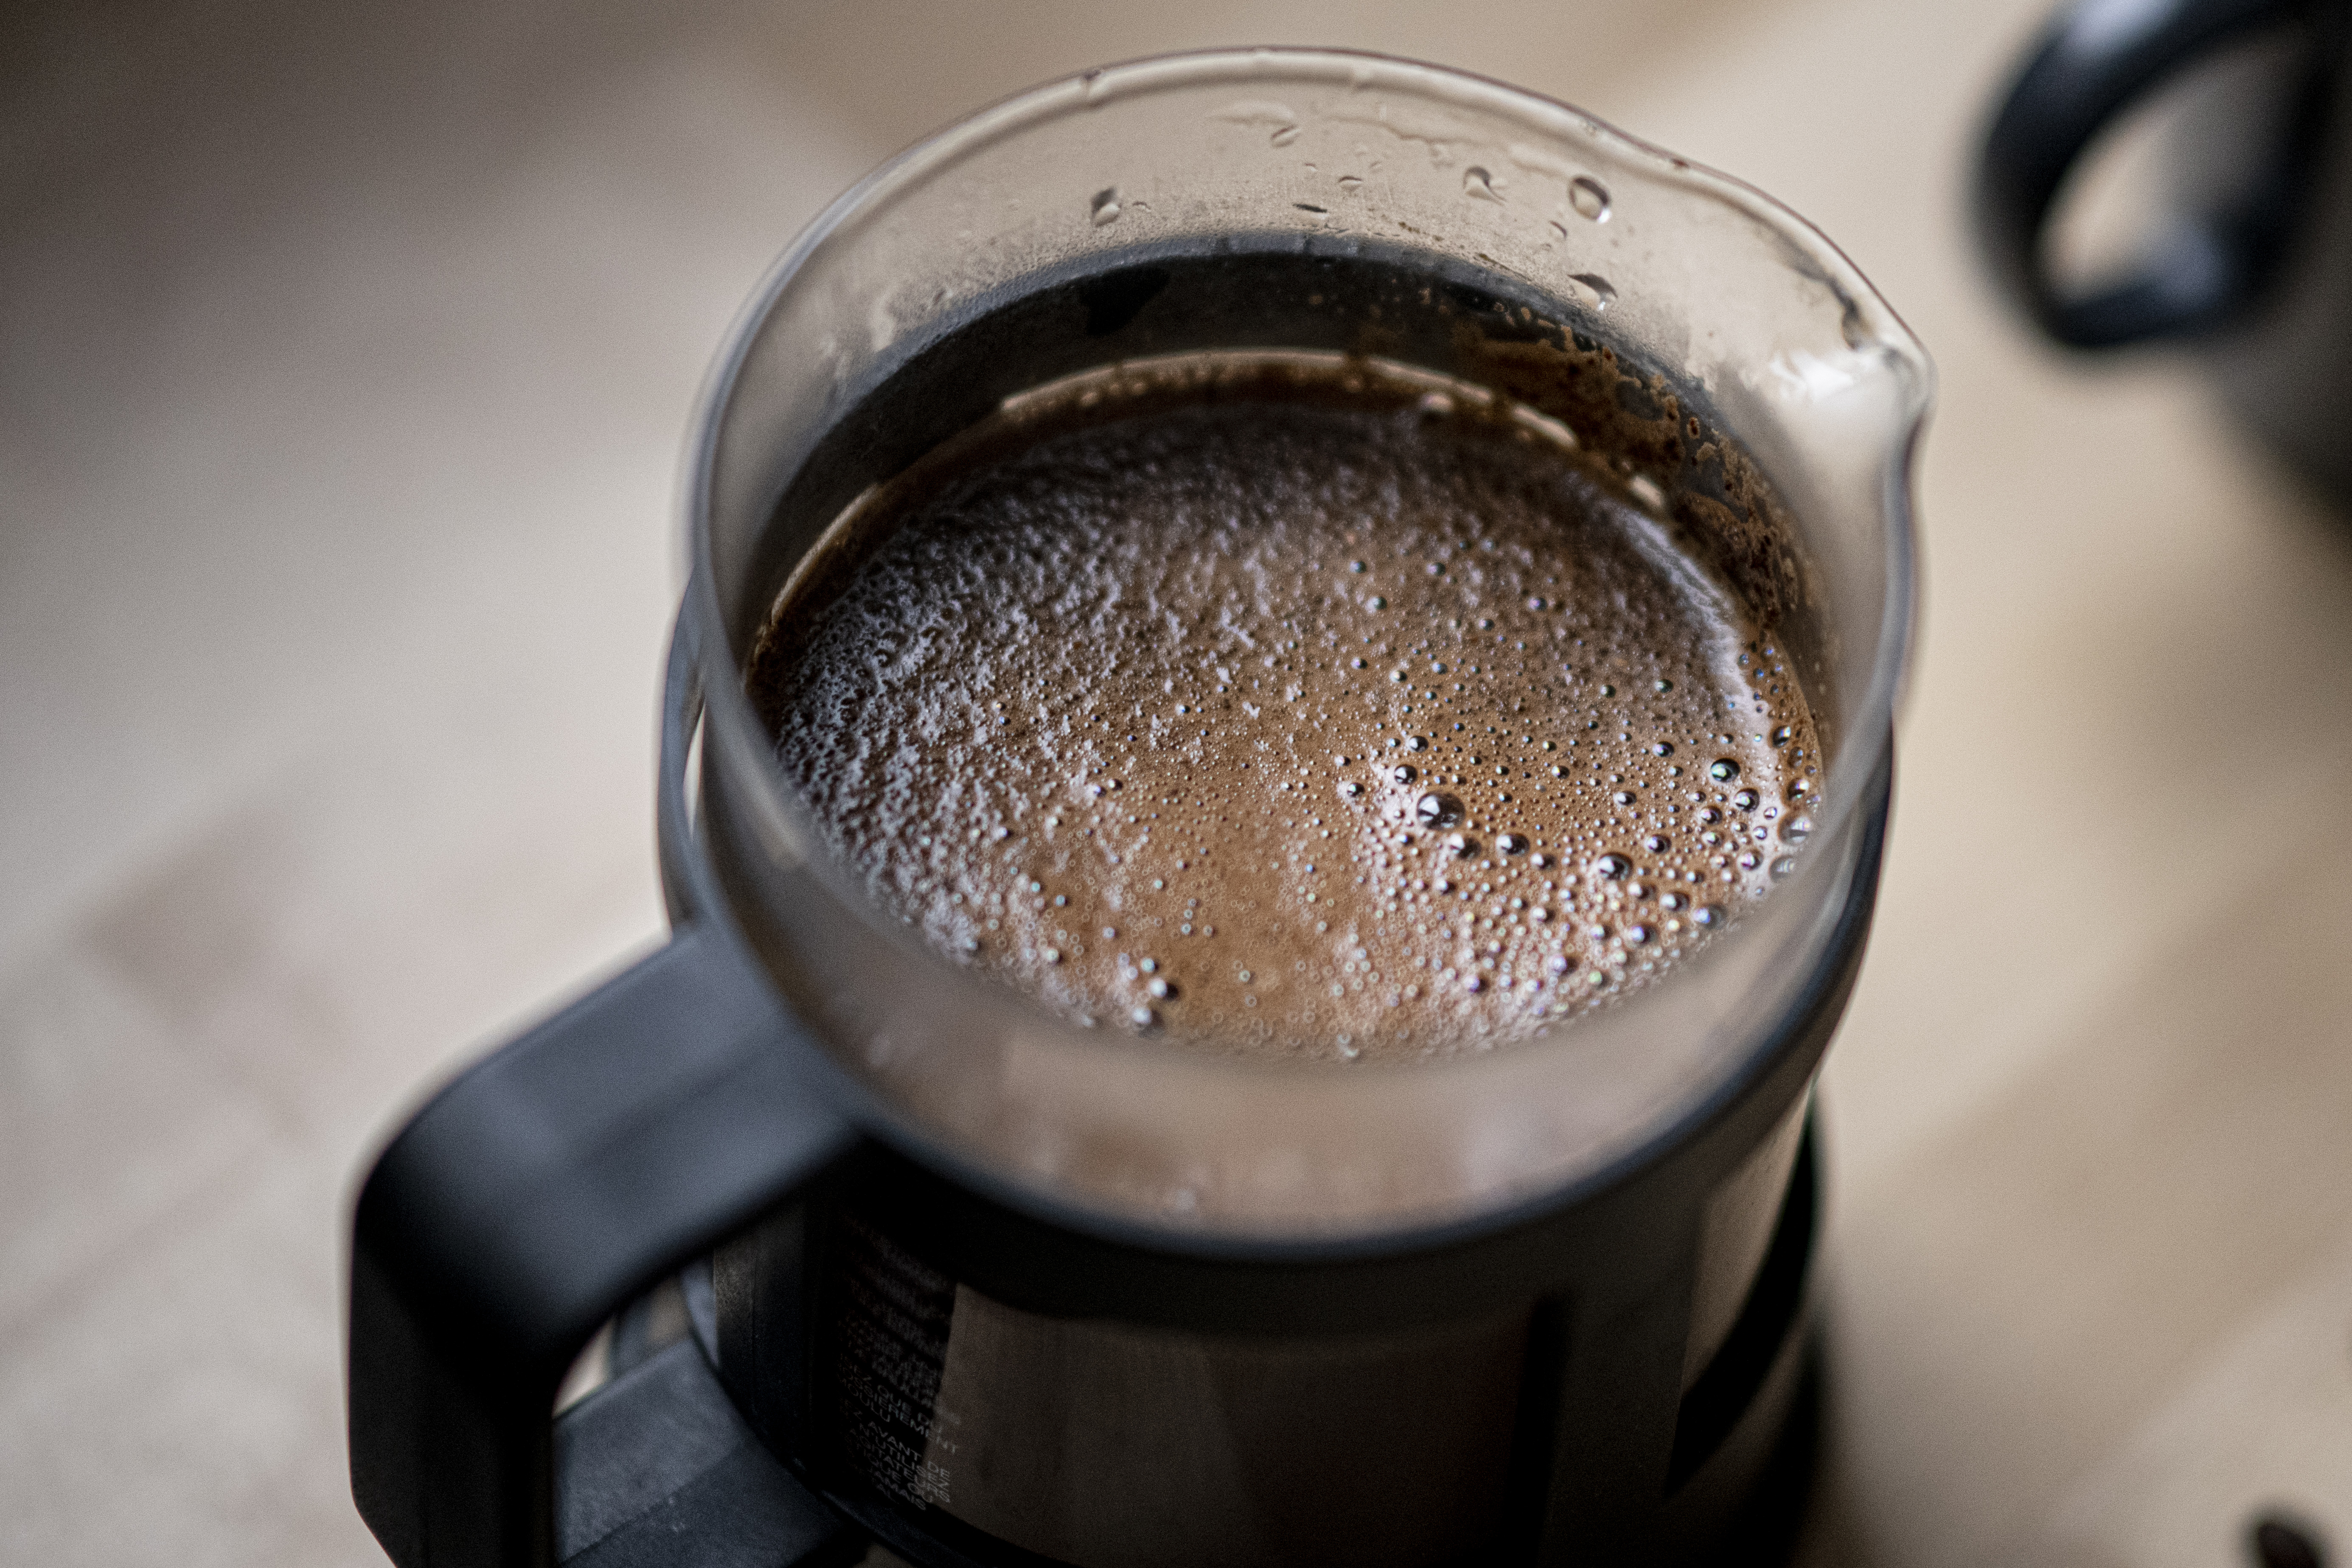 Coffee could soon cost more at grocery stores and cafes. Here's why